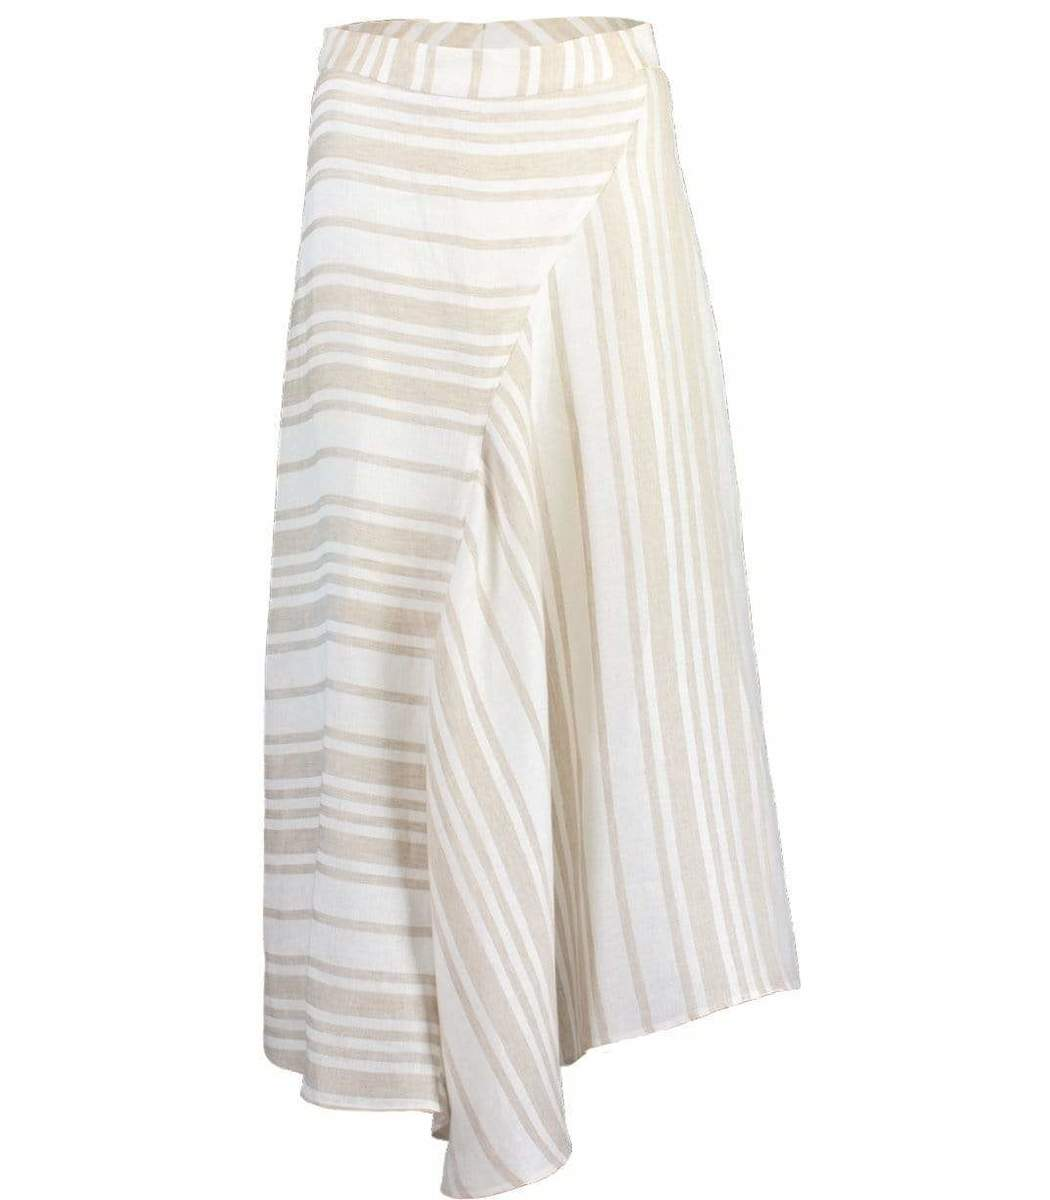 Co A-Line Linen Midi Skirt - Taupe Stripe